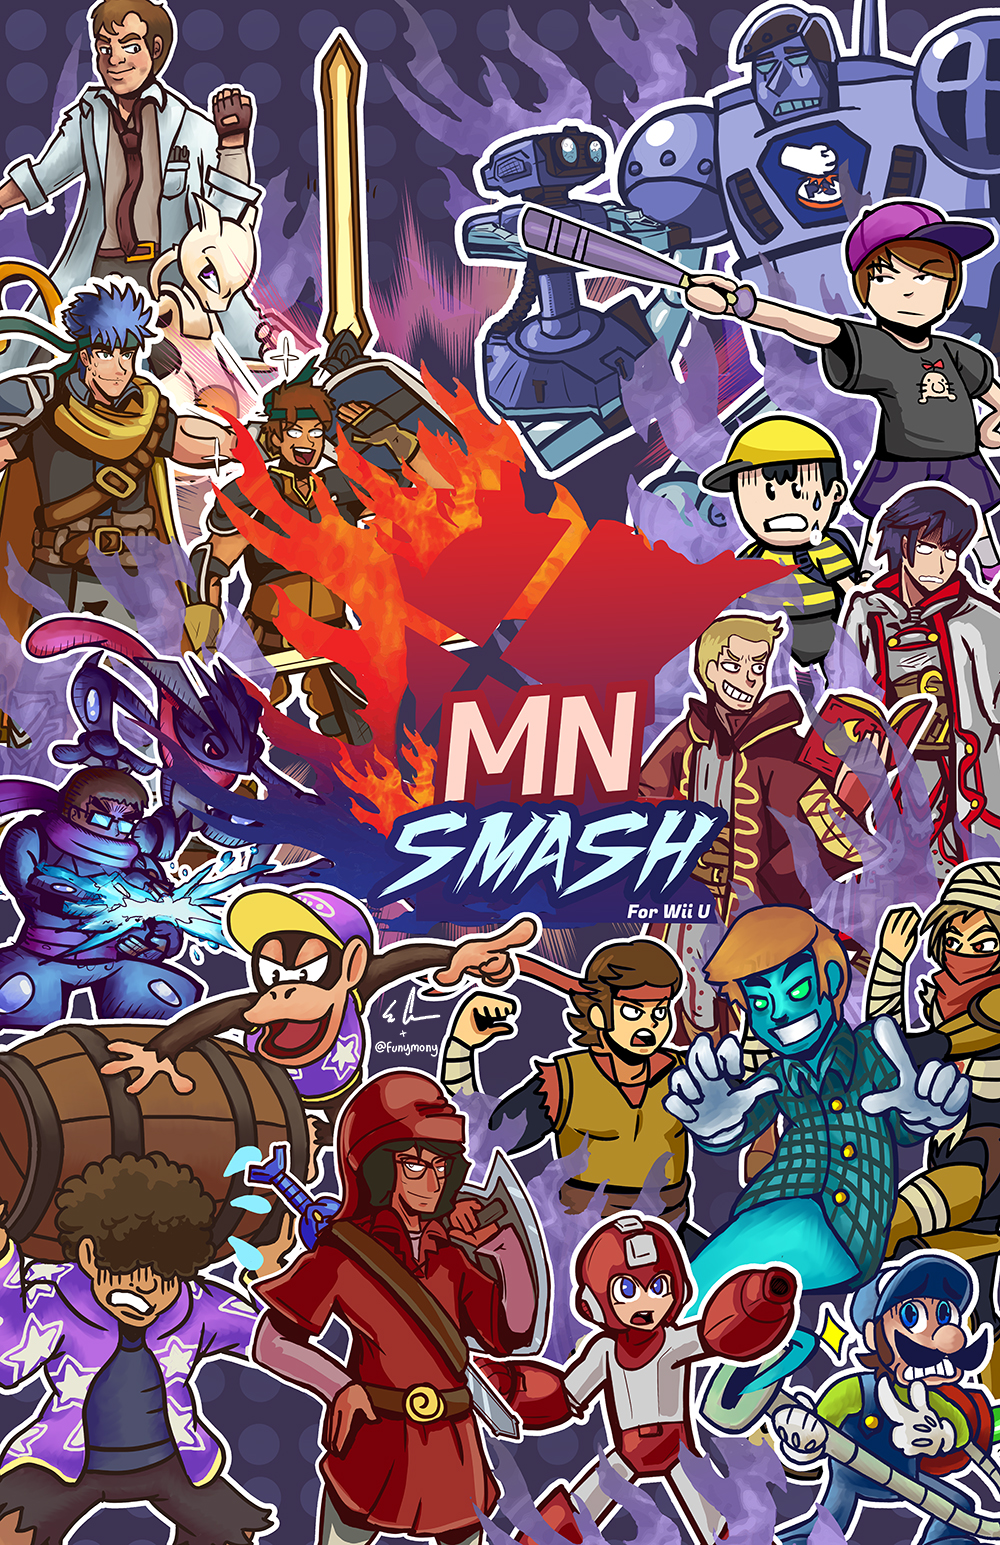 MN Smash PR Poster for PMB2018